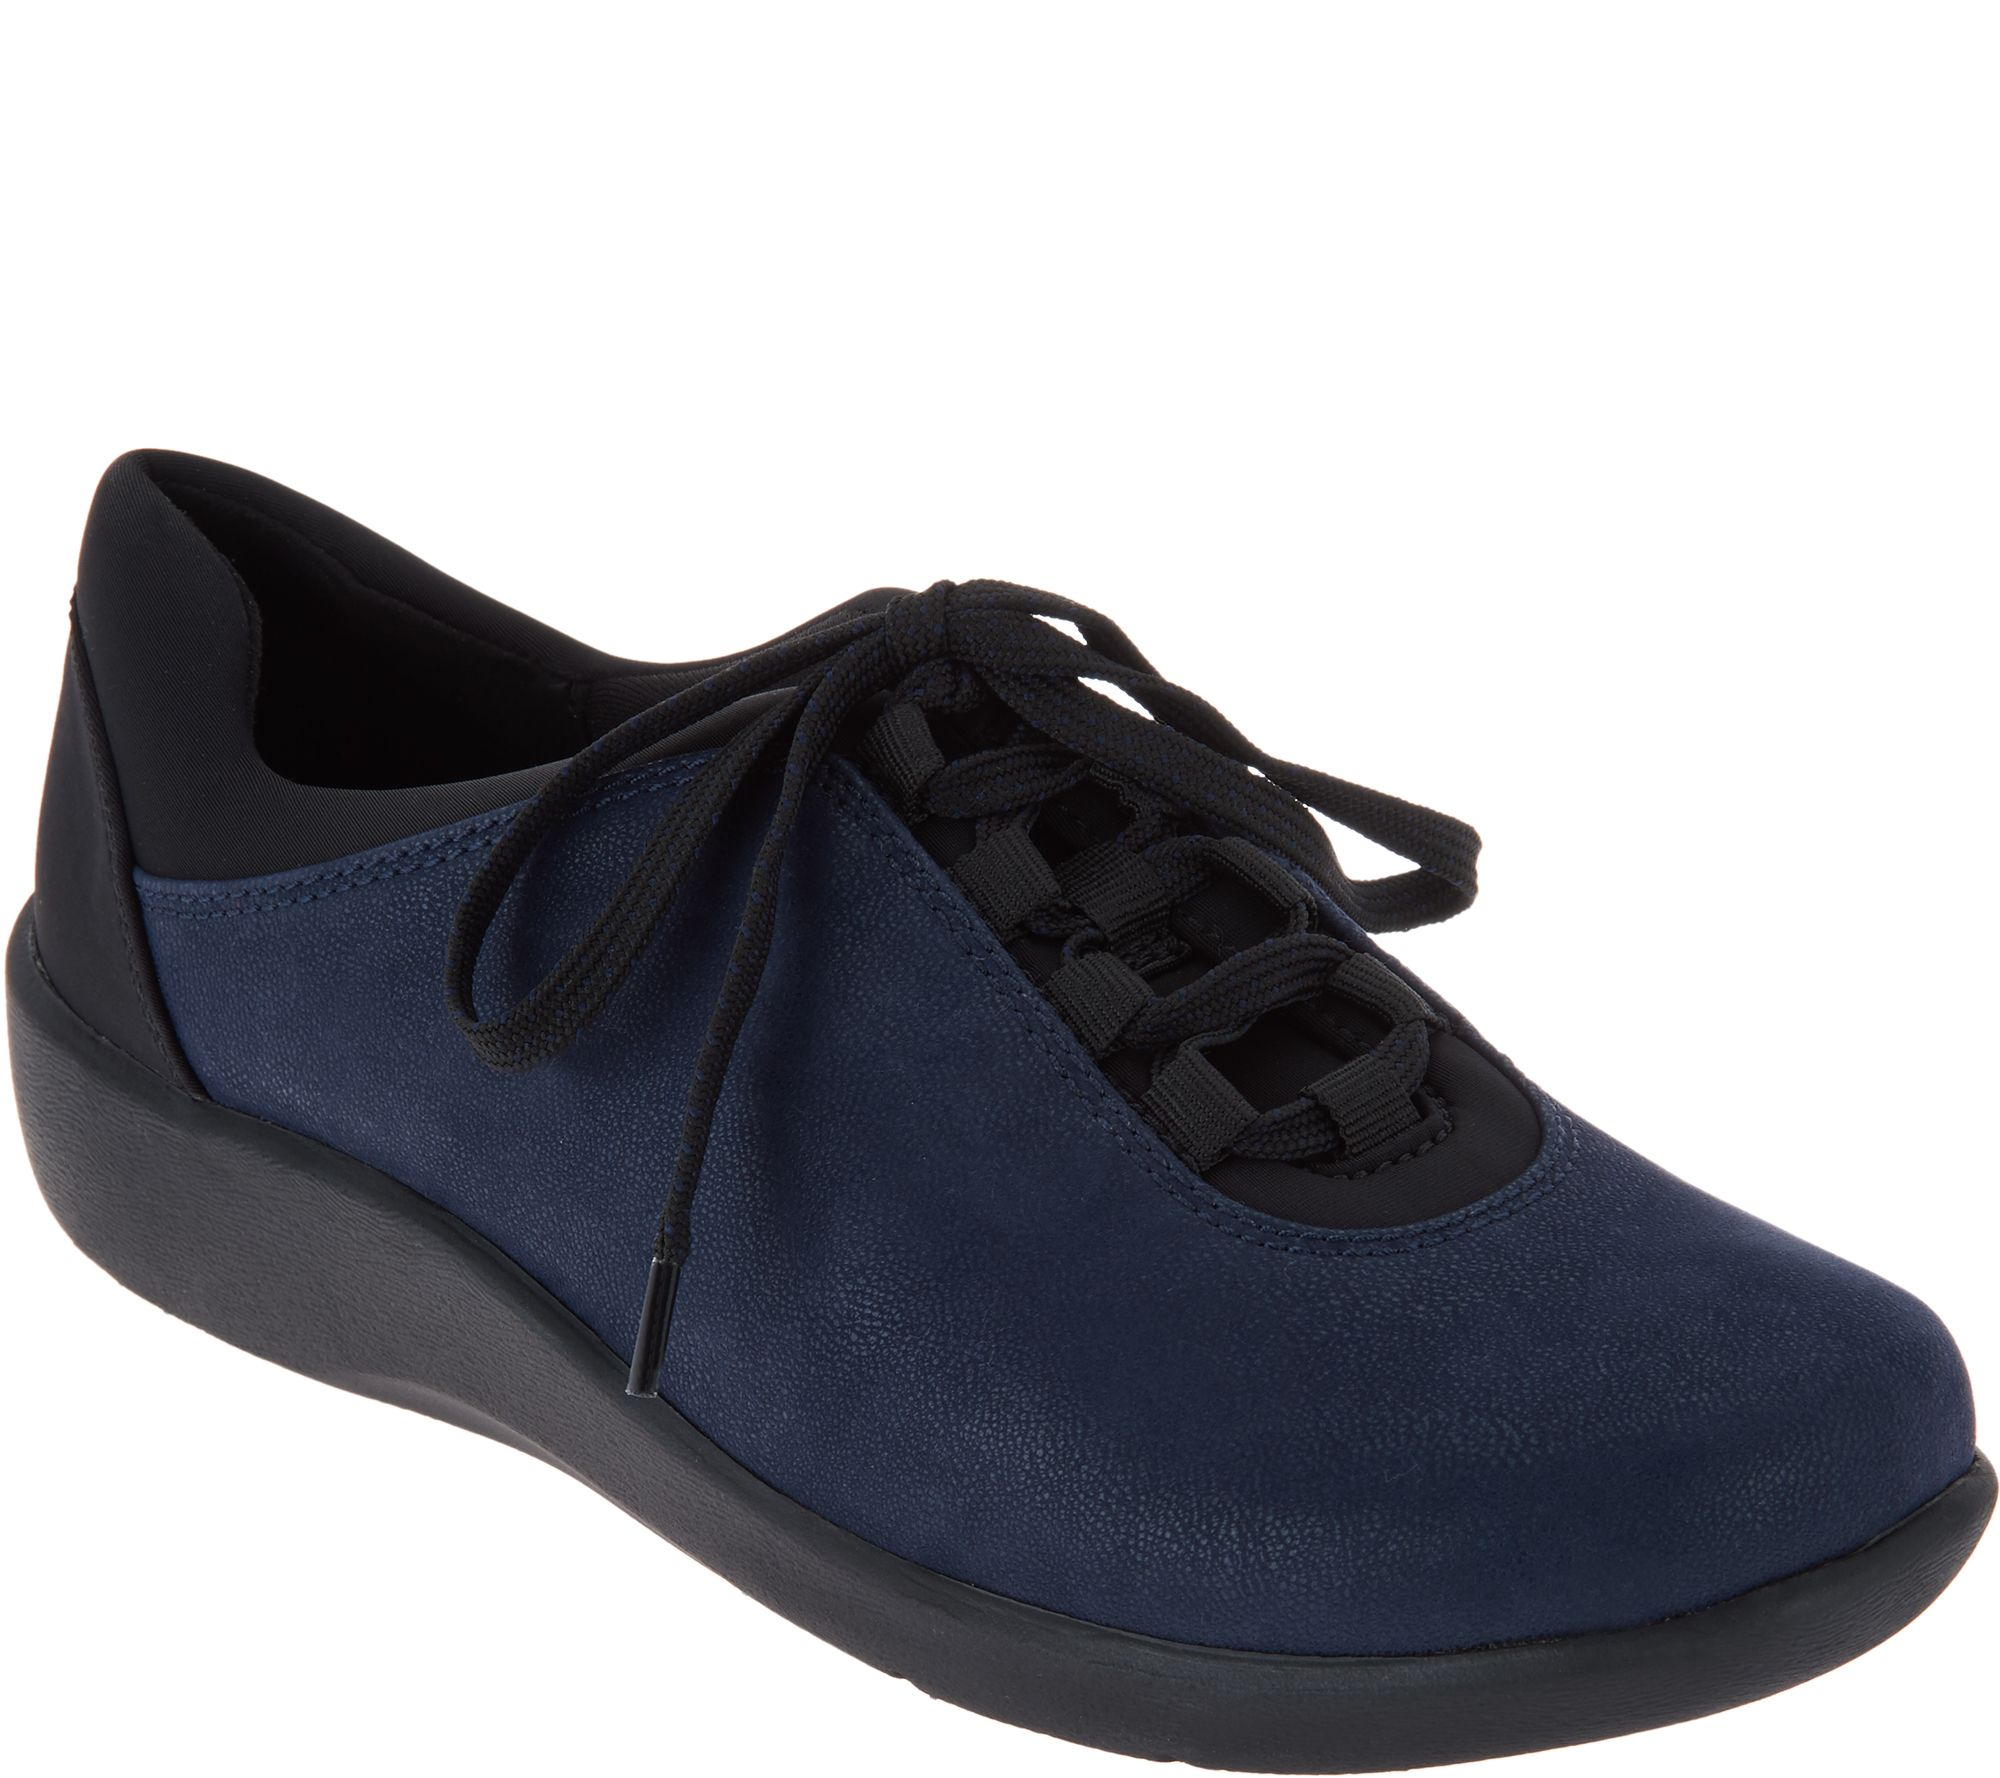 CLOUDSTEPPERS by Clarks Lace-up Shoes - Sillian Pine - A297770